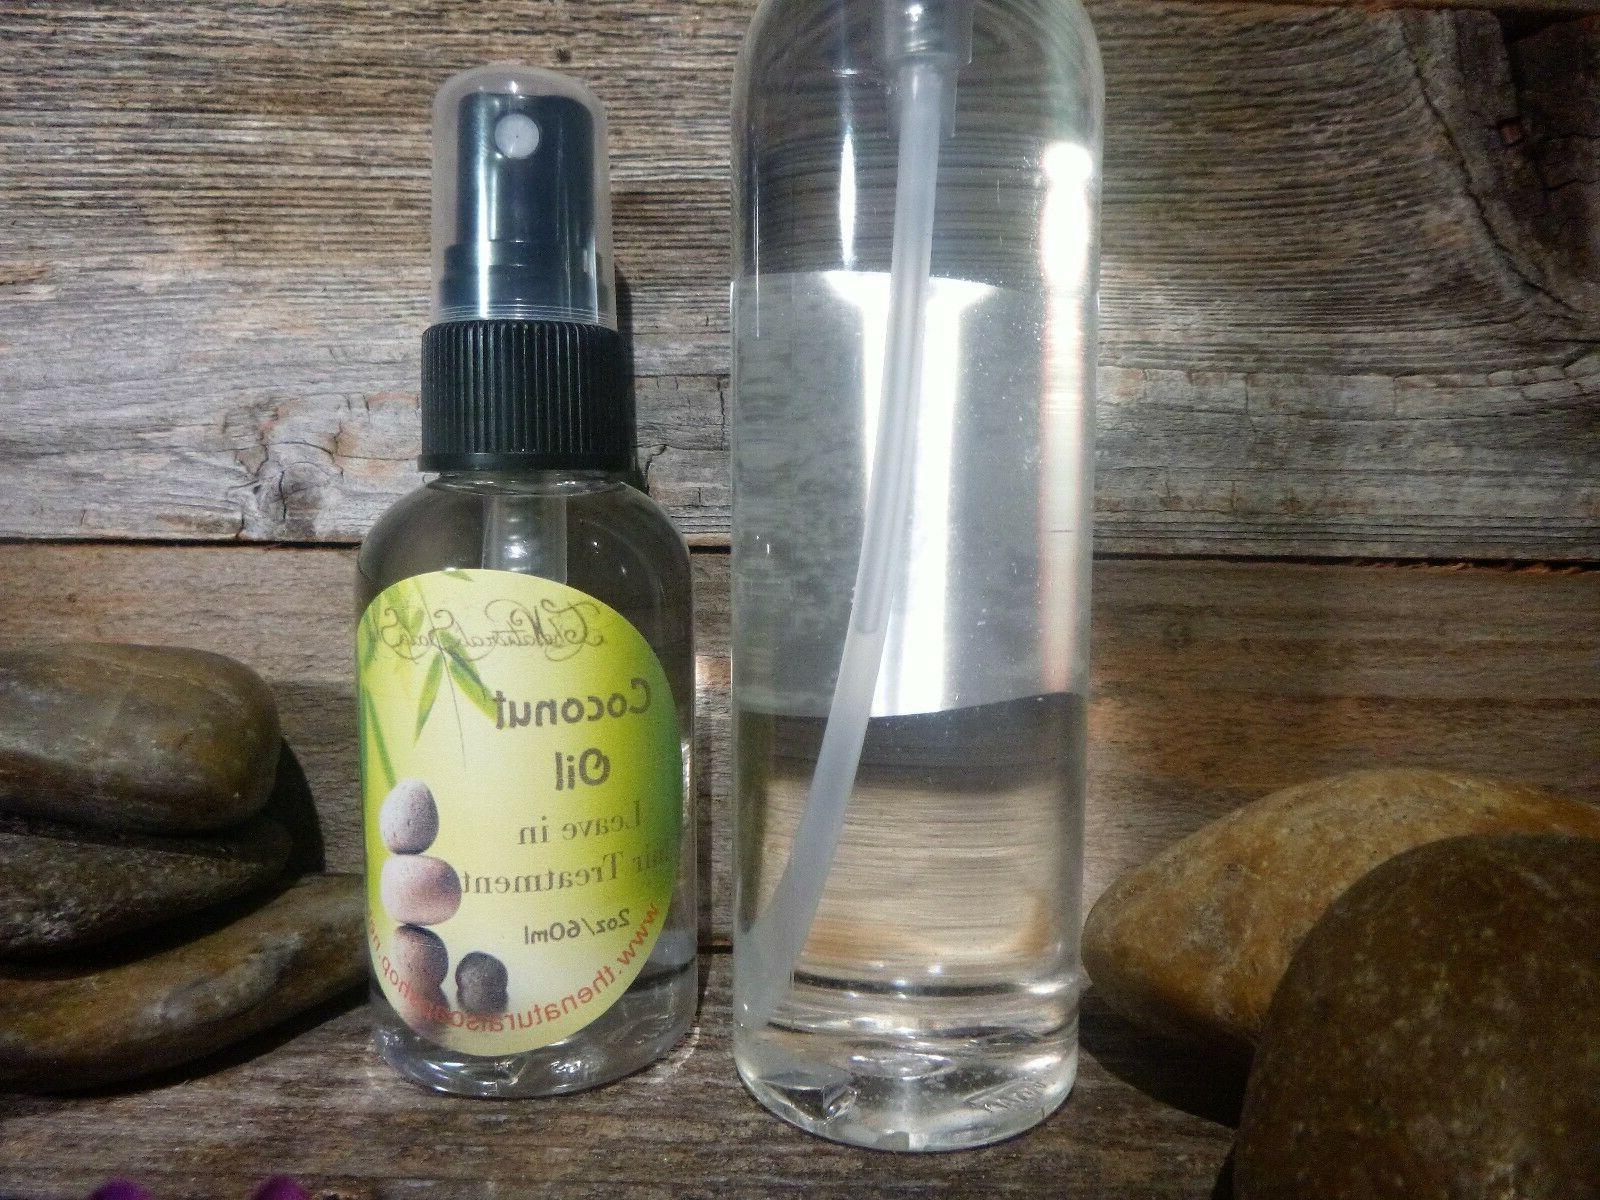 Coconut Oil Treatment Spray In Get Shiny, Minutes